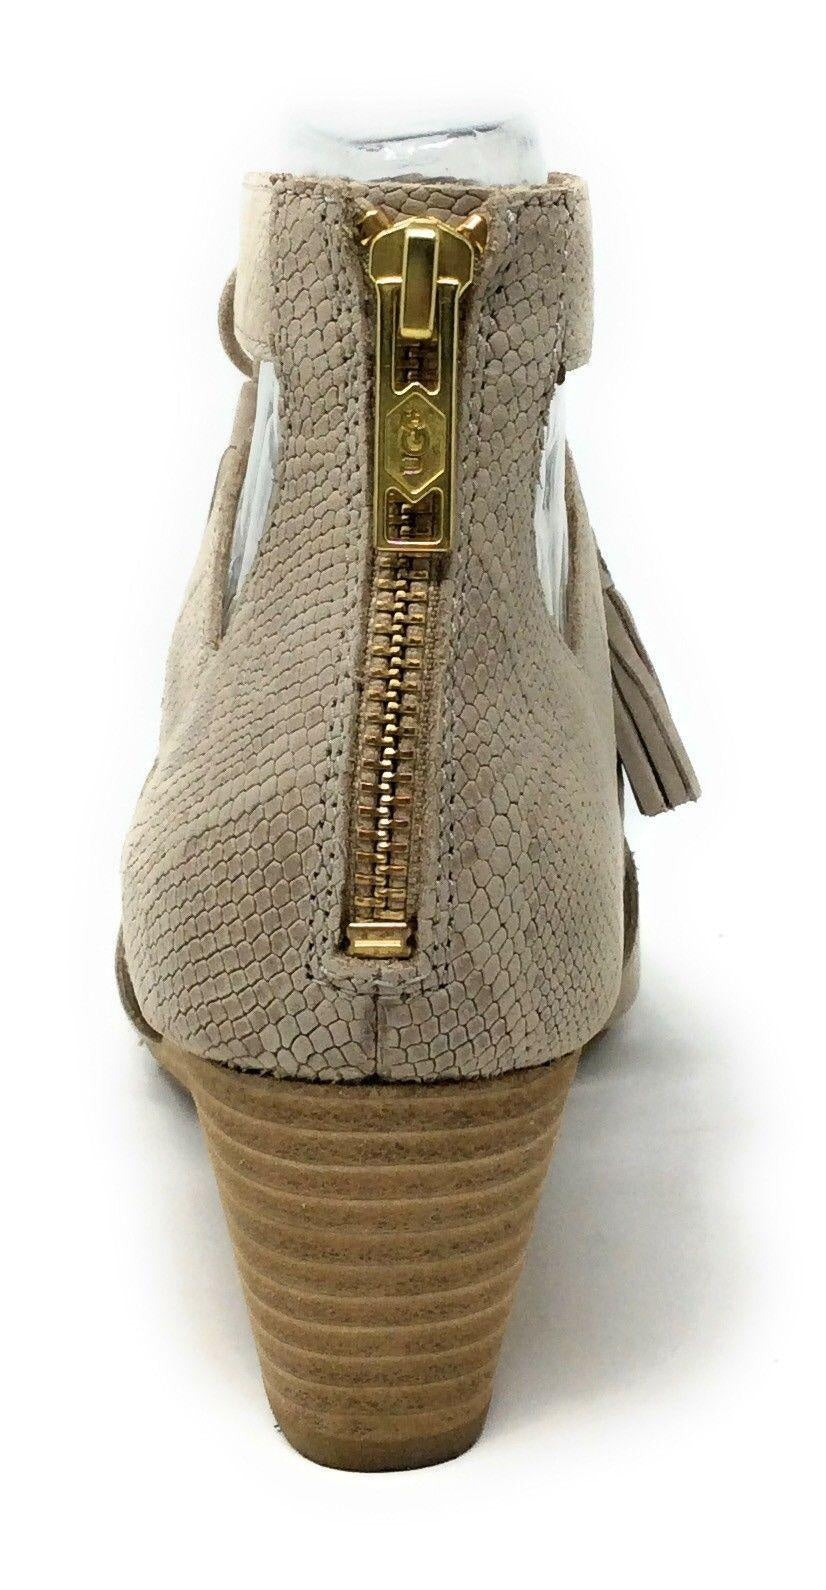 UGG Yasmin Leather Snake Wedges 10M New!-Ugg Australia-Your Fashions For Less